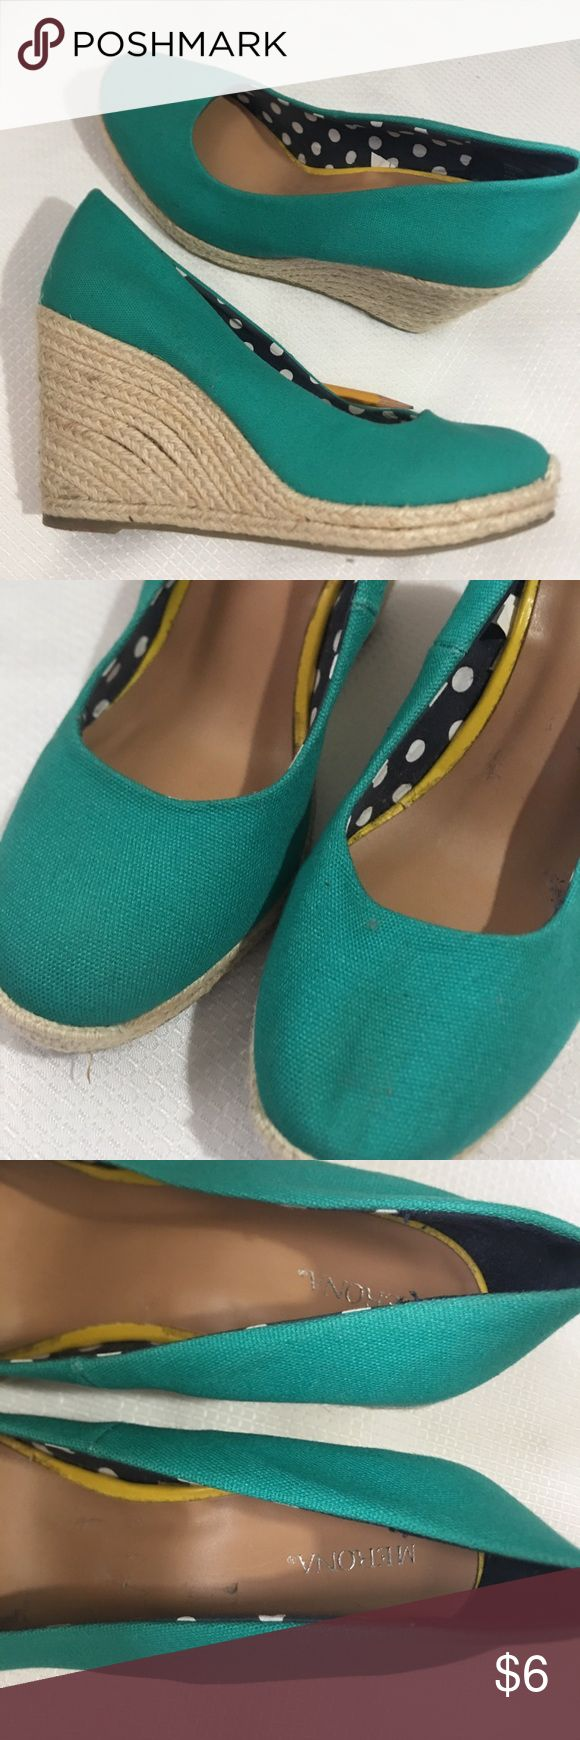 Merona Turquoise Wedges Size 9 They need cleaning  Selling as is Merona Shoes Wedges